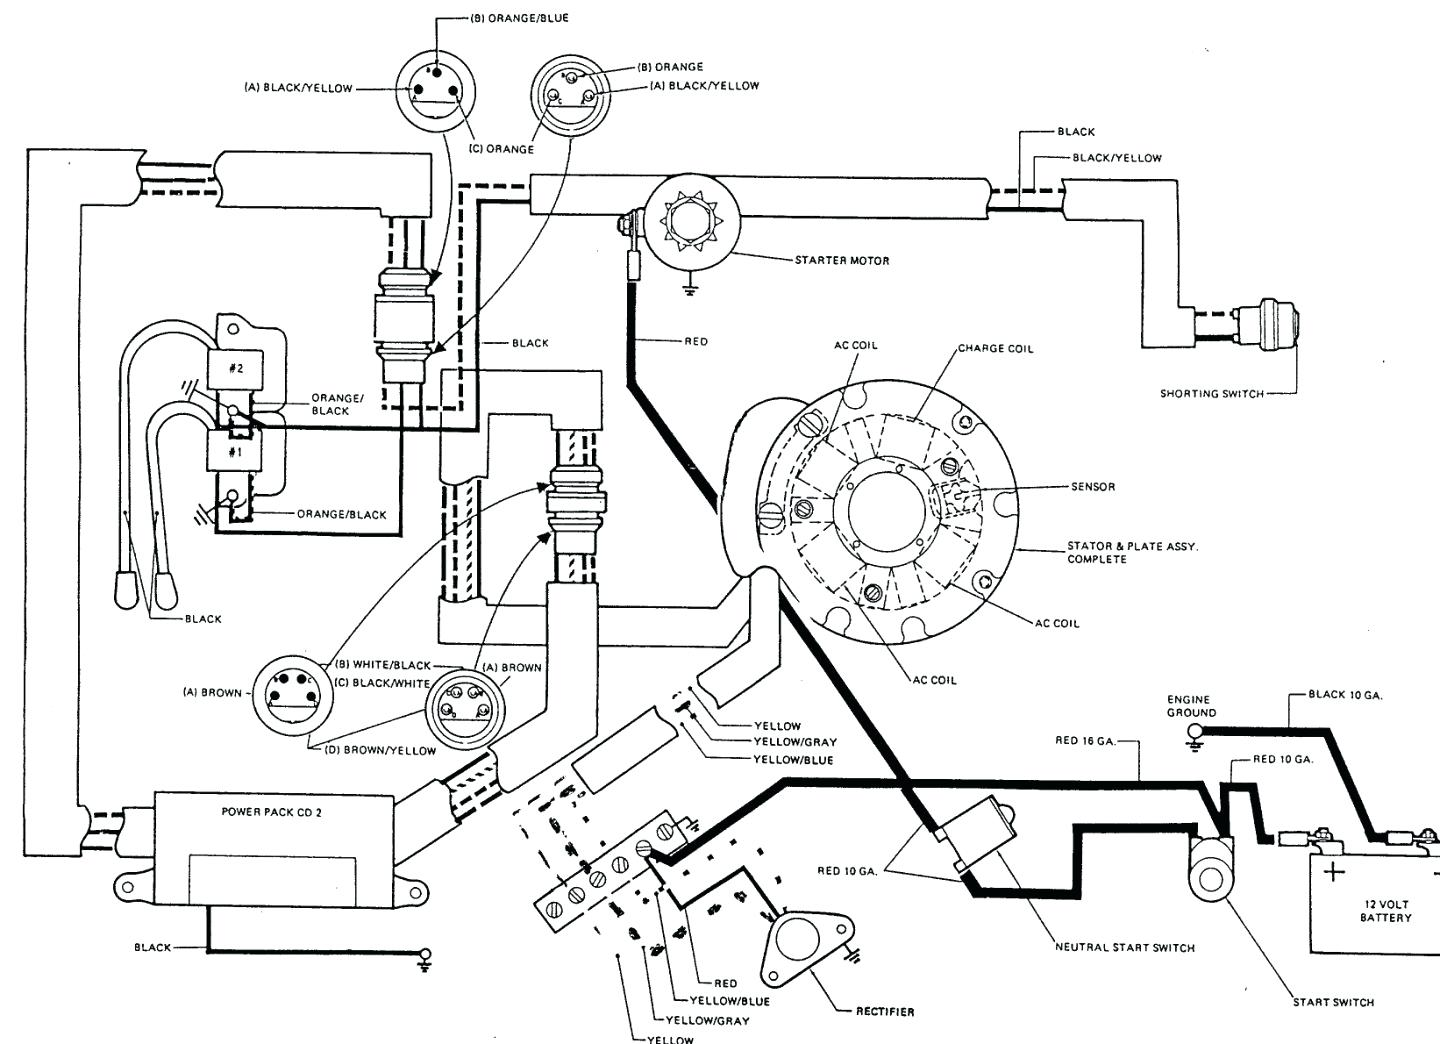 6 2 diesel wiring diagram 73 dodge dart engine drawing at getdrawings free for